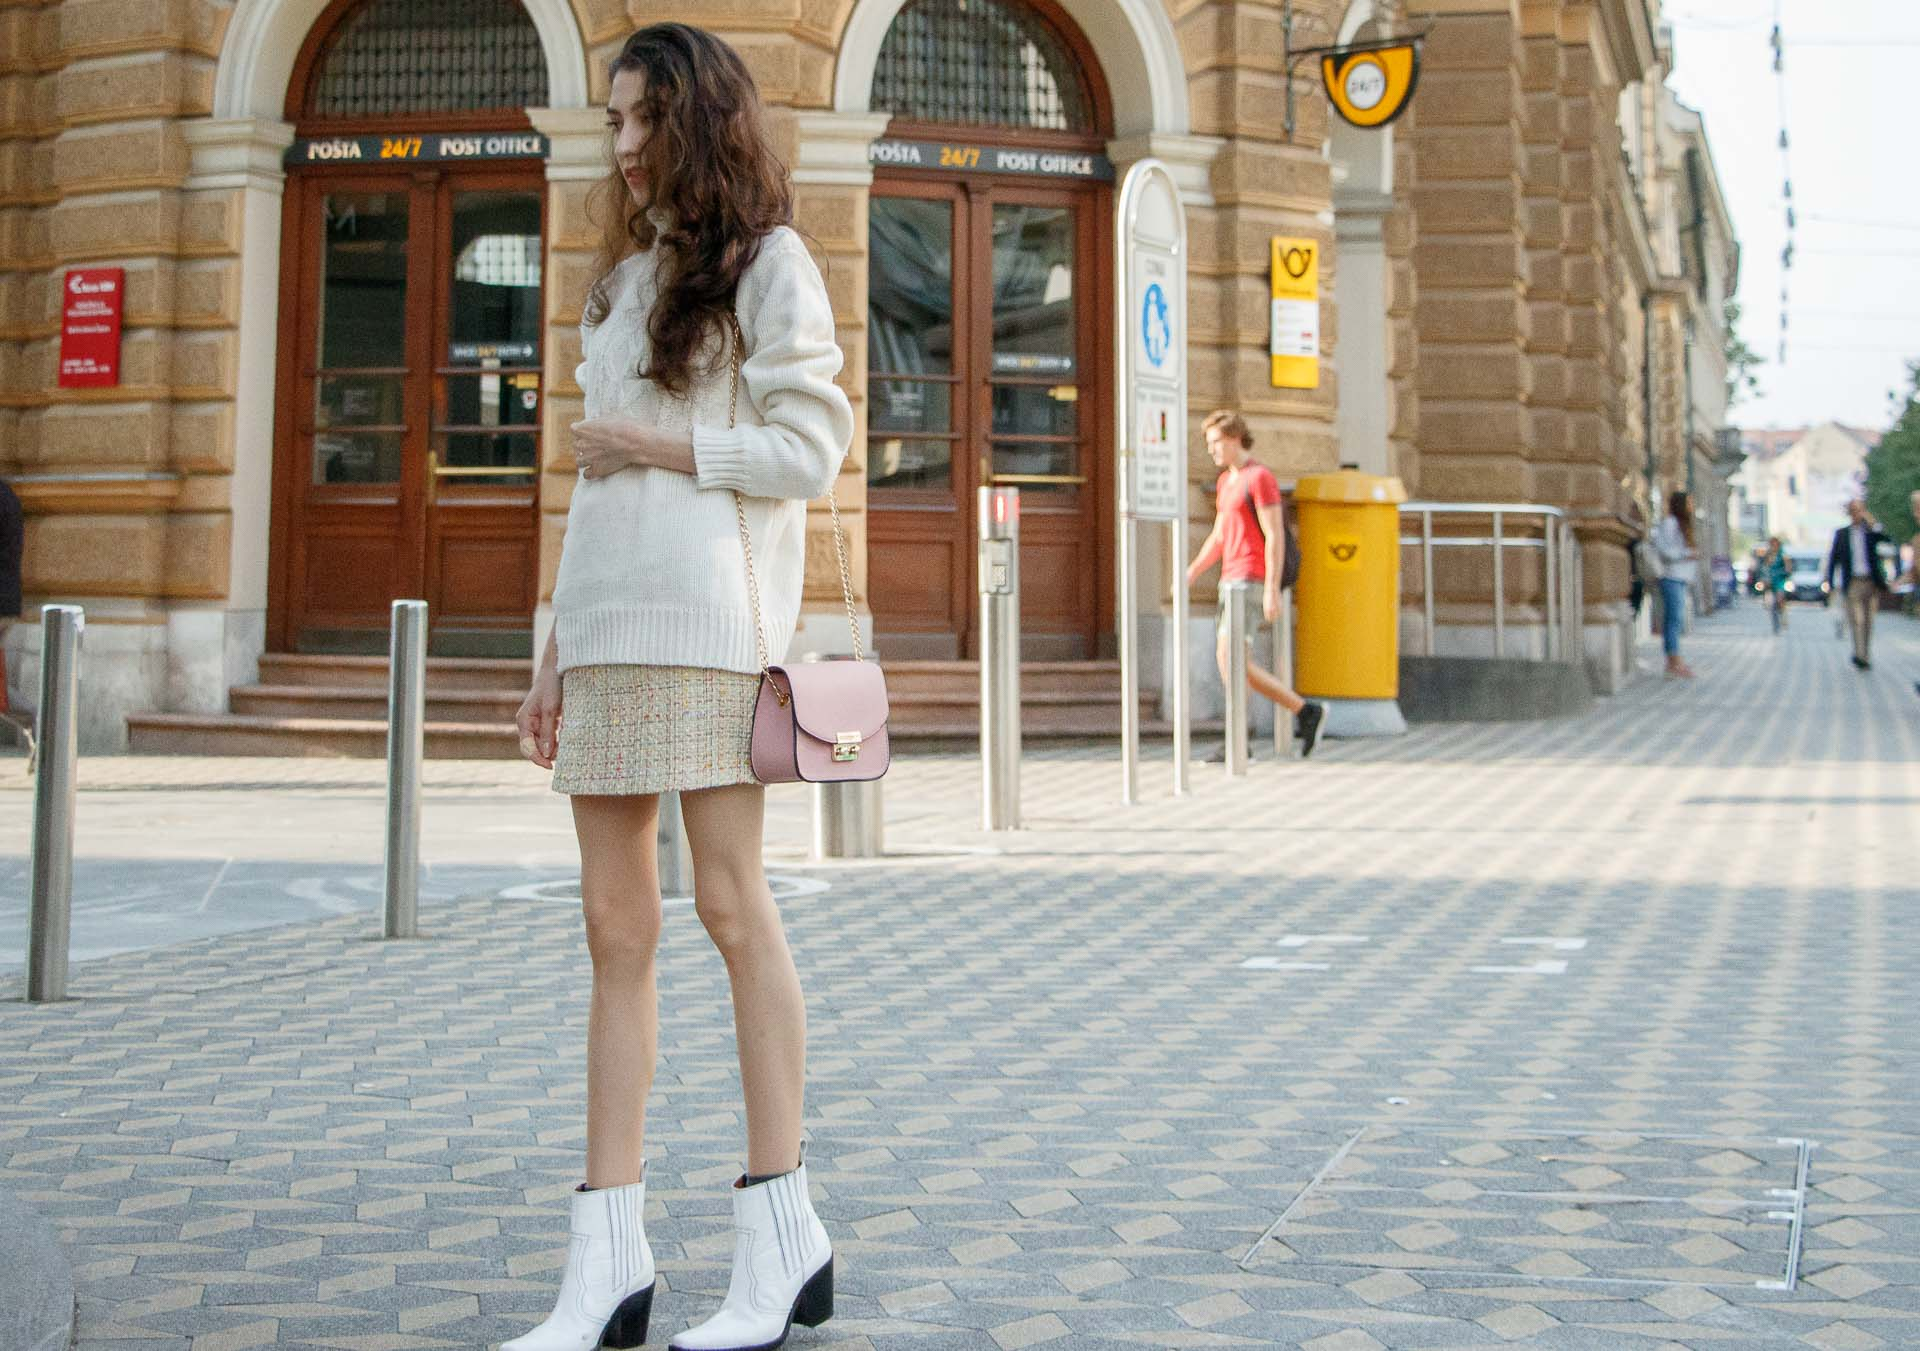 Beautiful Slovenian Fashion Blogger Veronika Lipar of Brunette from Wall wearing white Ganni Western boots, yellow tweed skirt, white turtleneck sweater, chain strap shoulder bag on the street in the morning in Ljubljana in autumn